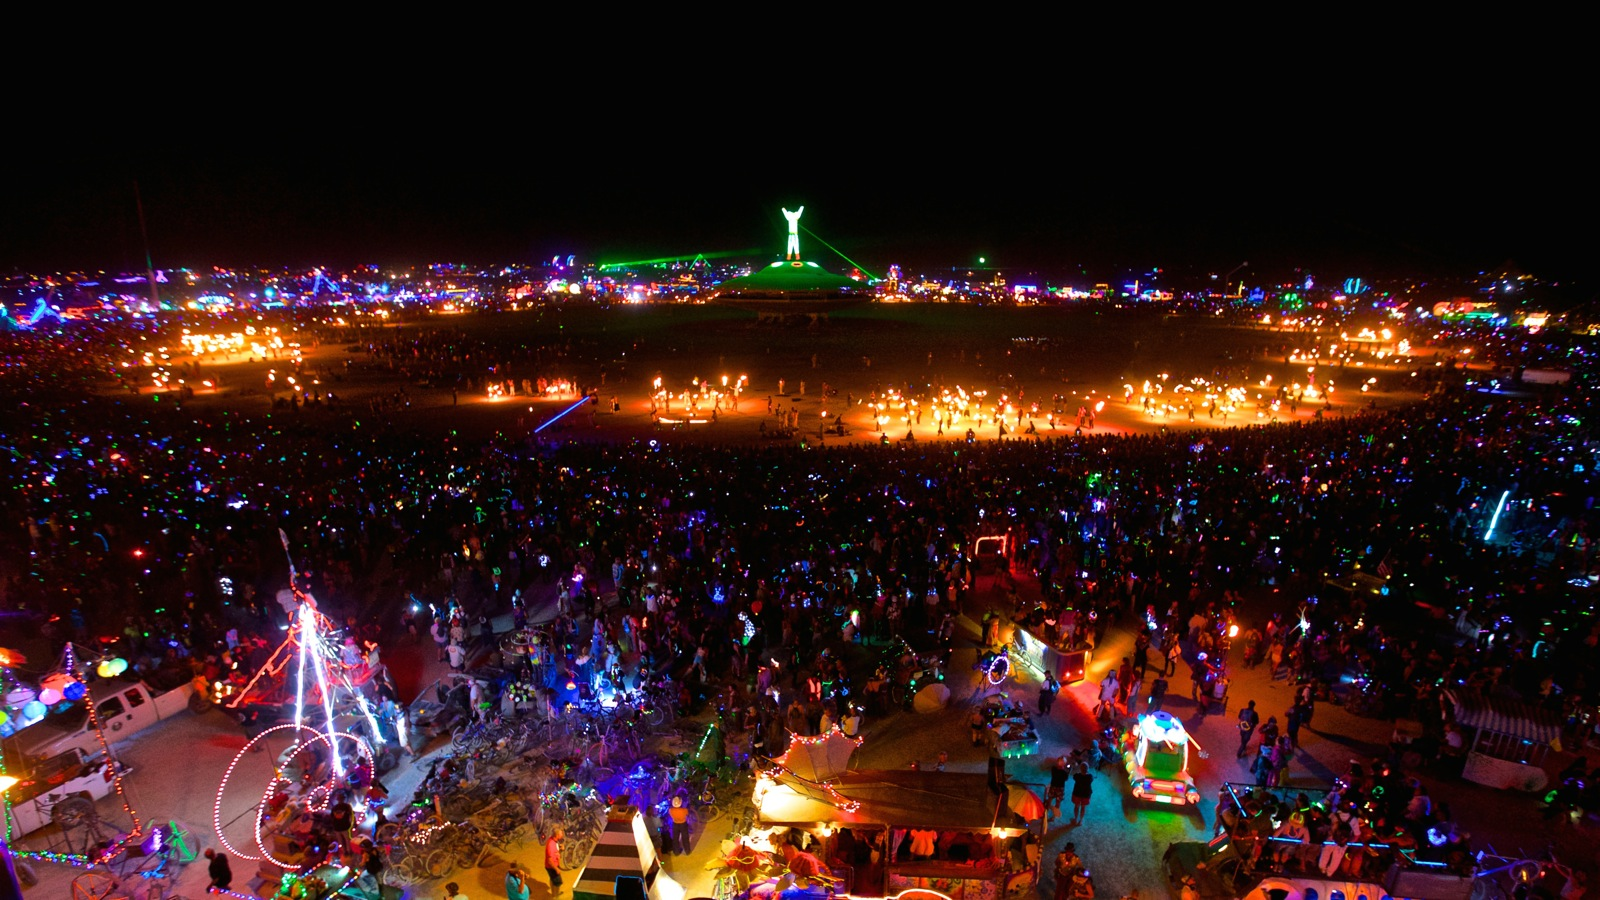 Drones eye view of Burning Man at night. Photo: pinterest